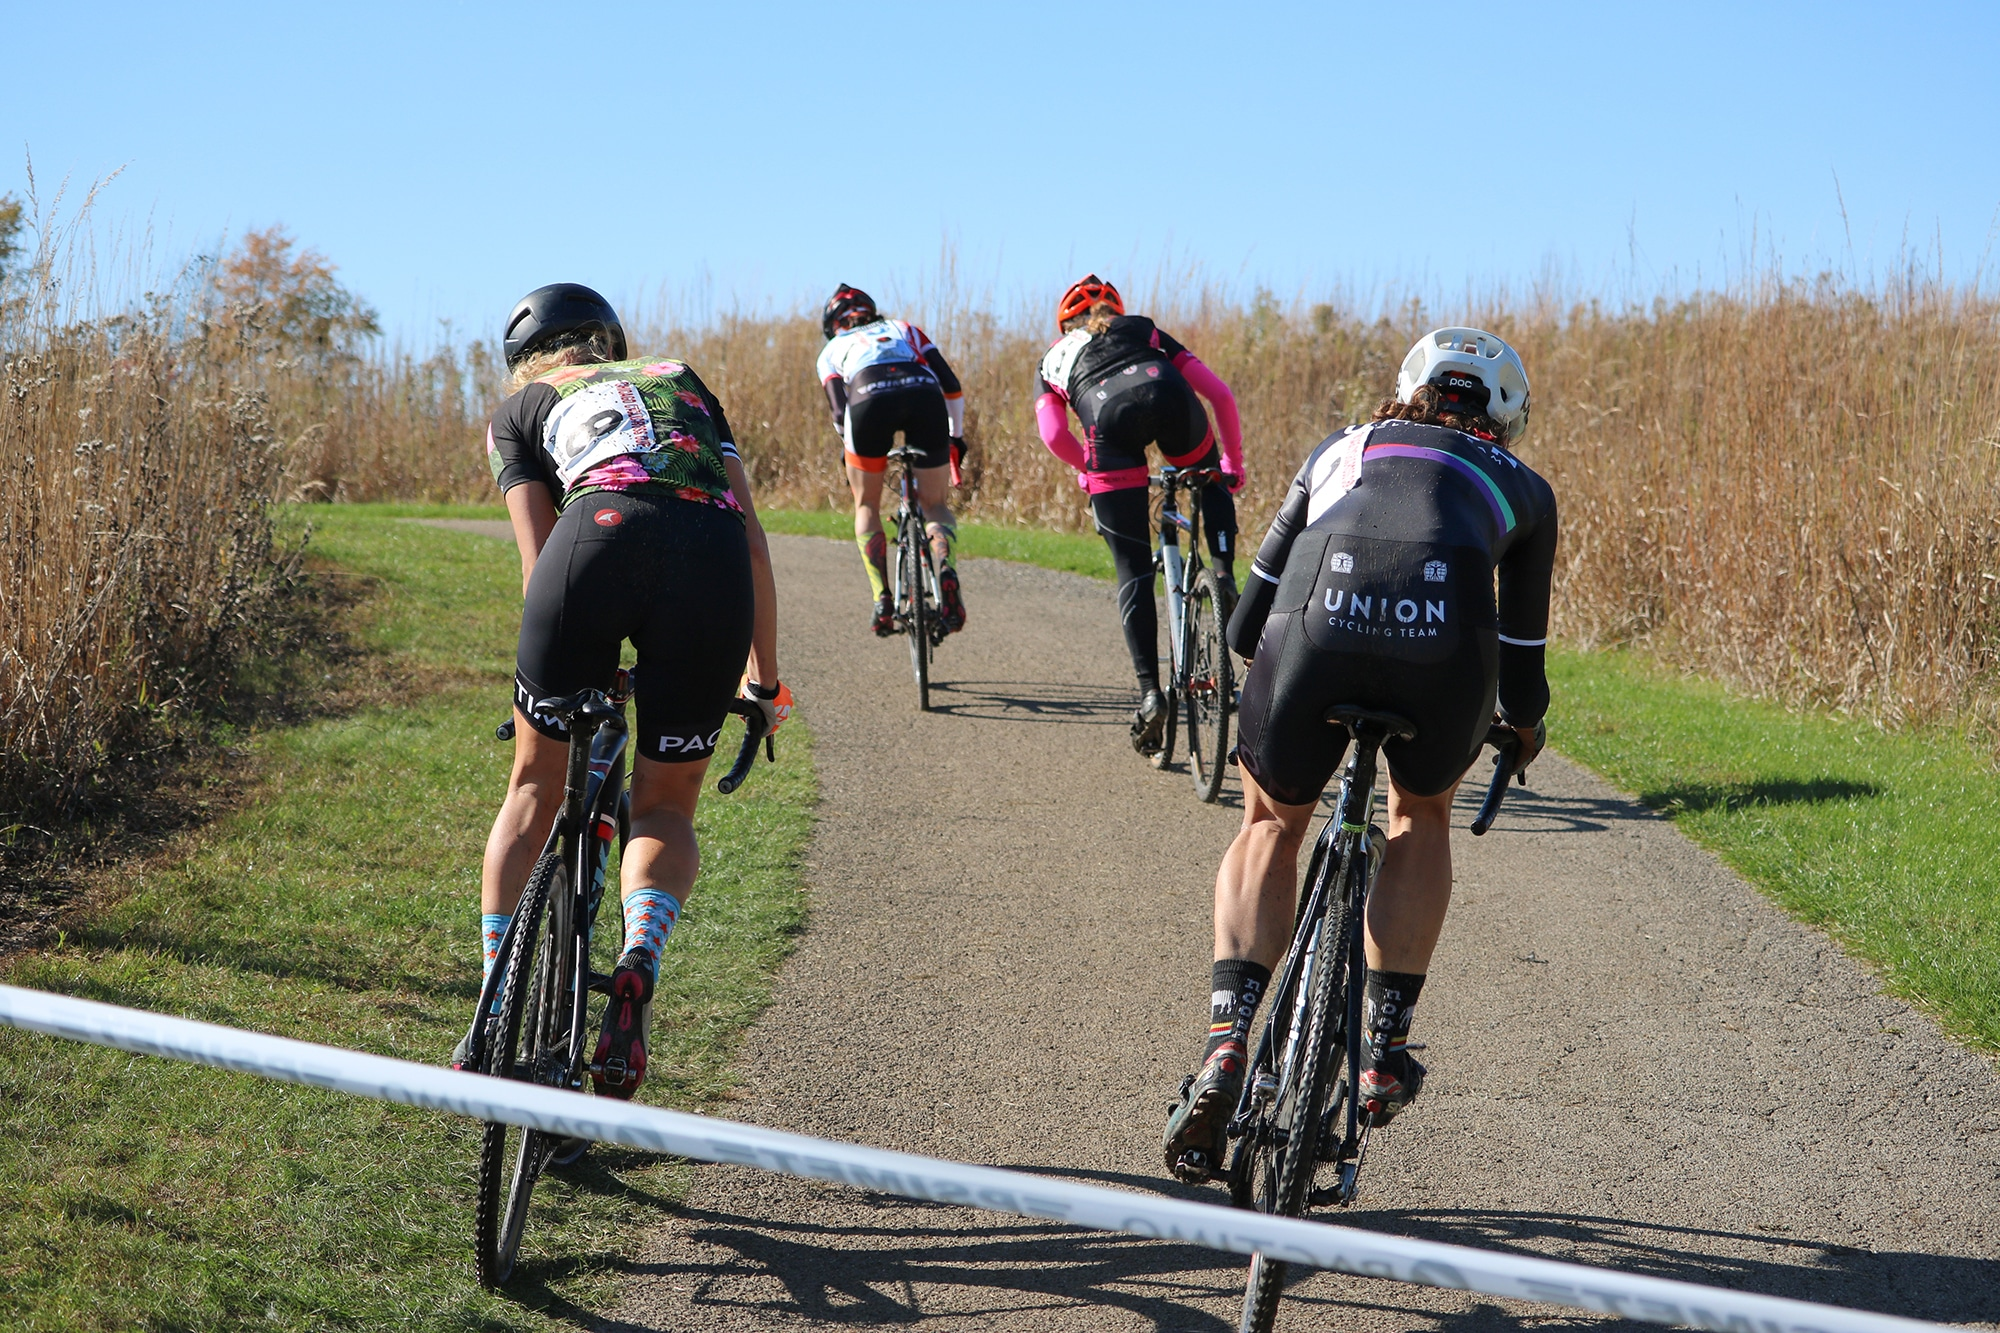 4 women riding climb during Chicago Cross Cup